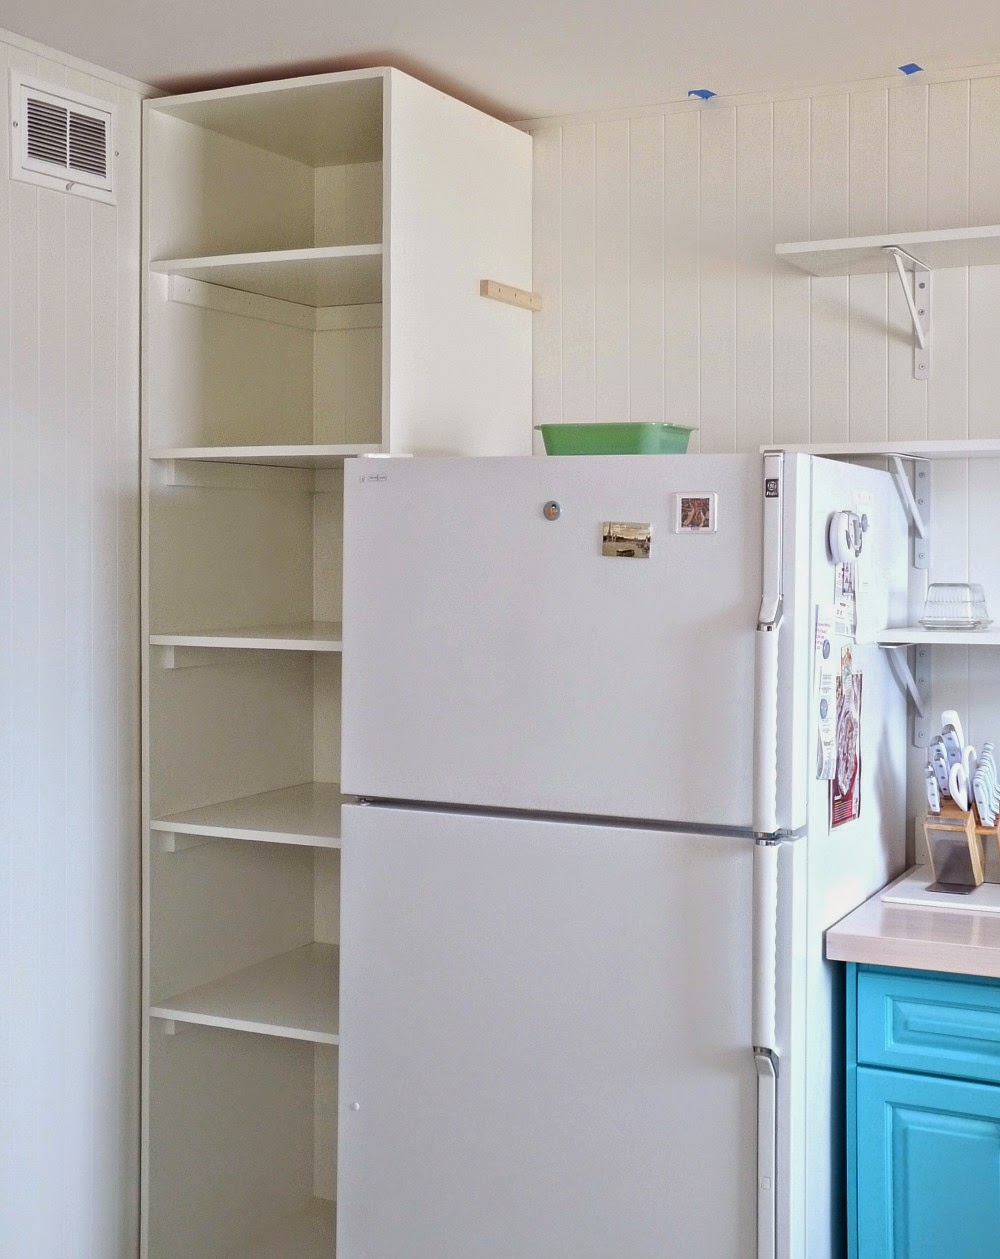 How to Build a Free Standing Storage Cabinet